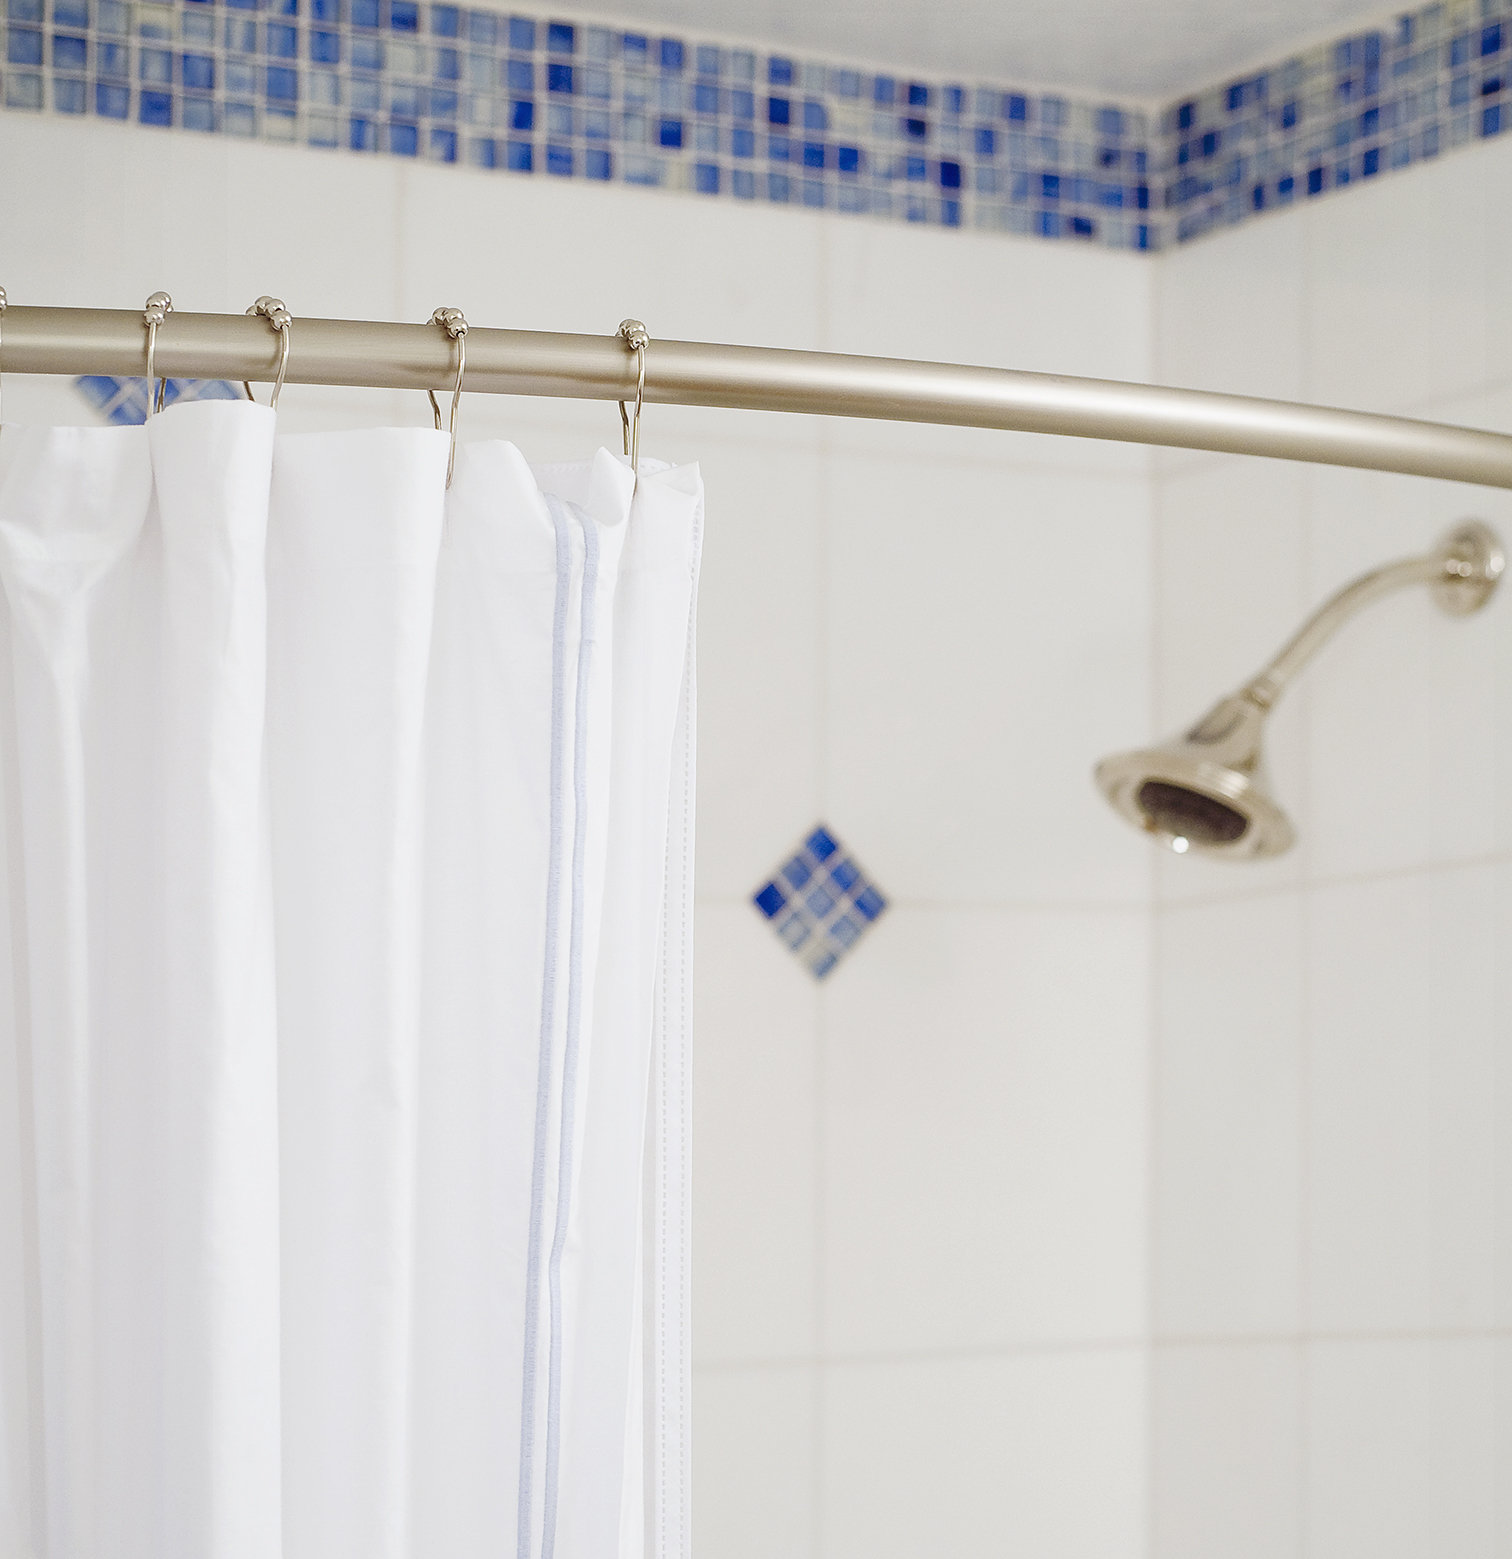 How to Clean Your Shower Curtain